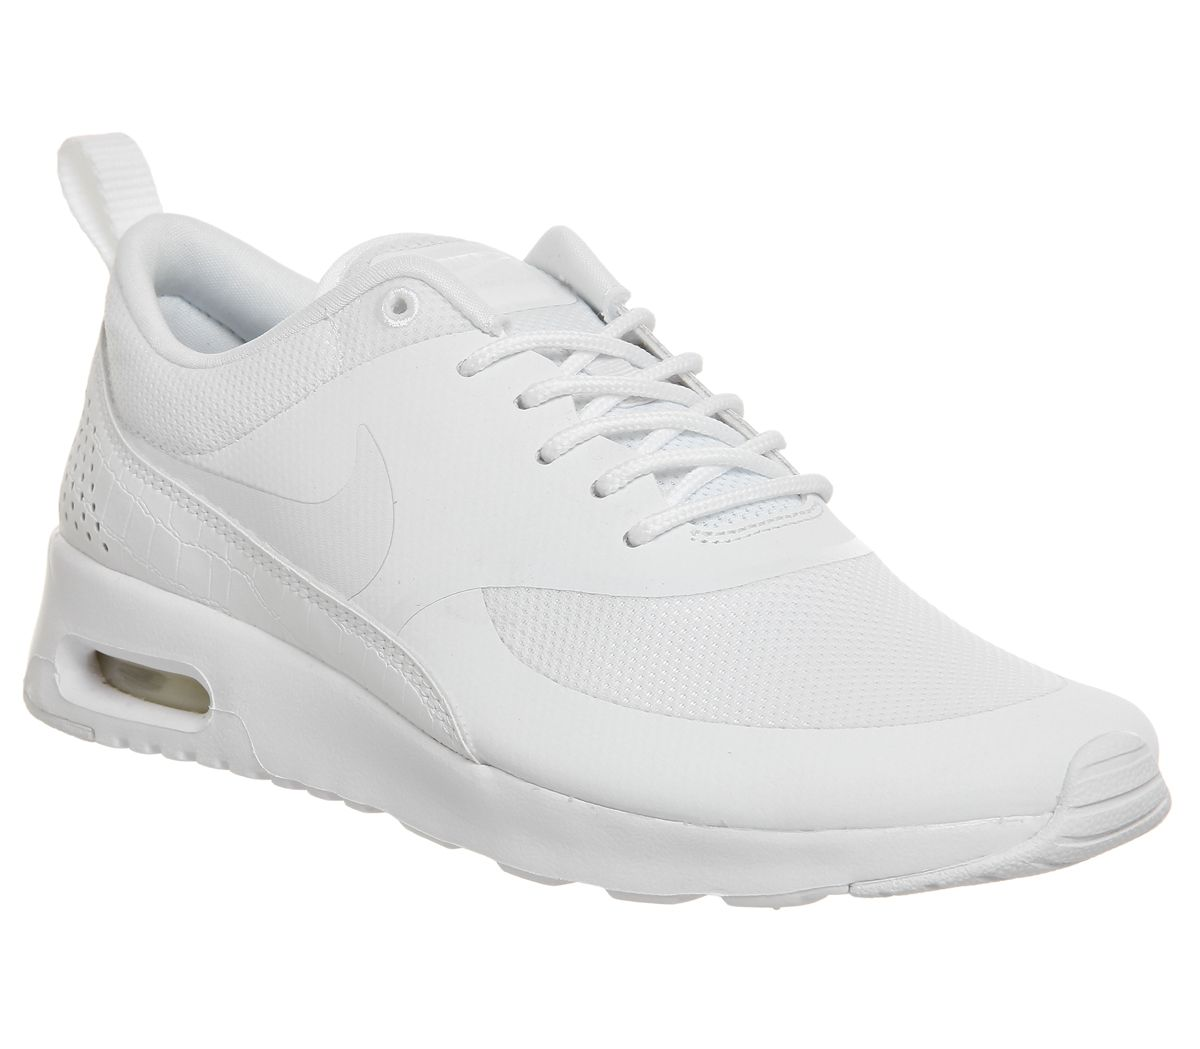 reputable site 8f07a 13822 Nike Air Max Thea White Mono - Hers trainers